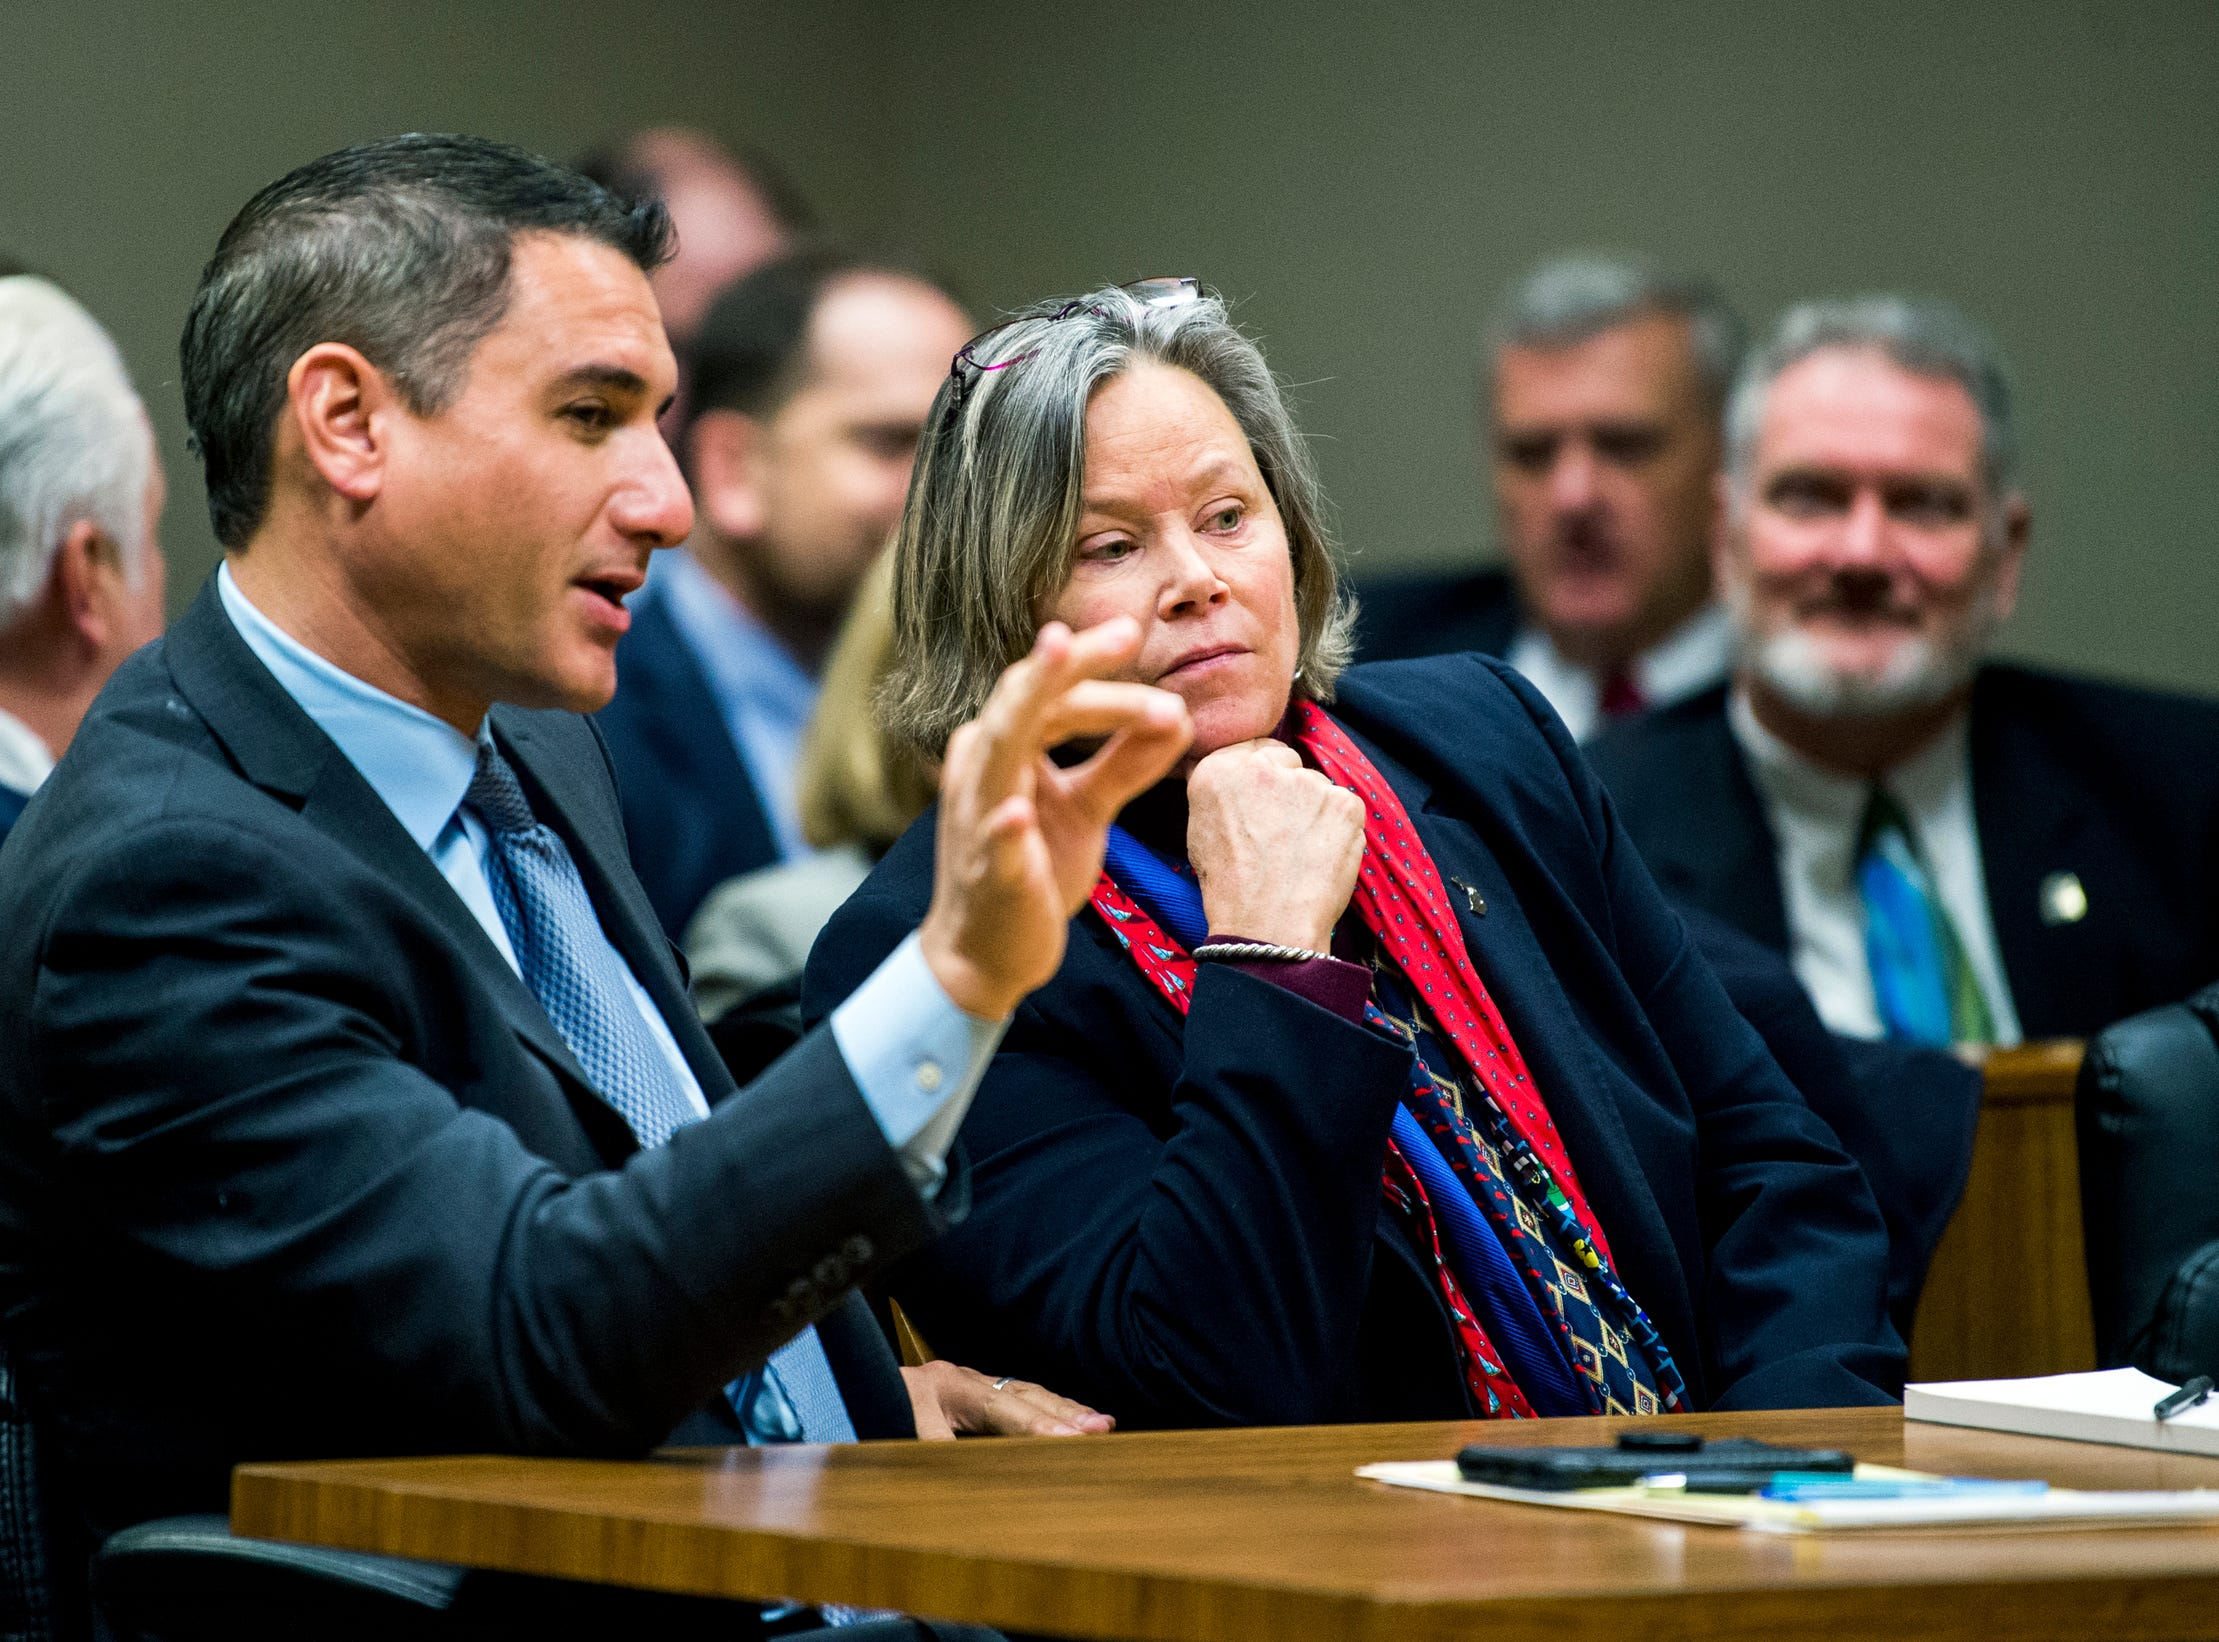 State Chief Medical Exec Wells headed to trial on Flint manslaughter charge